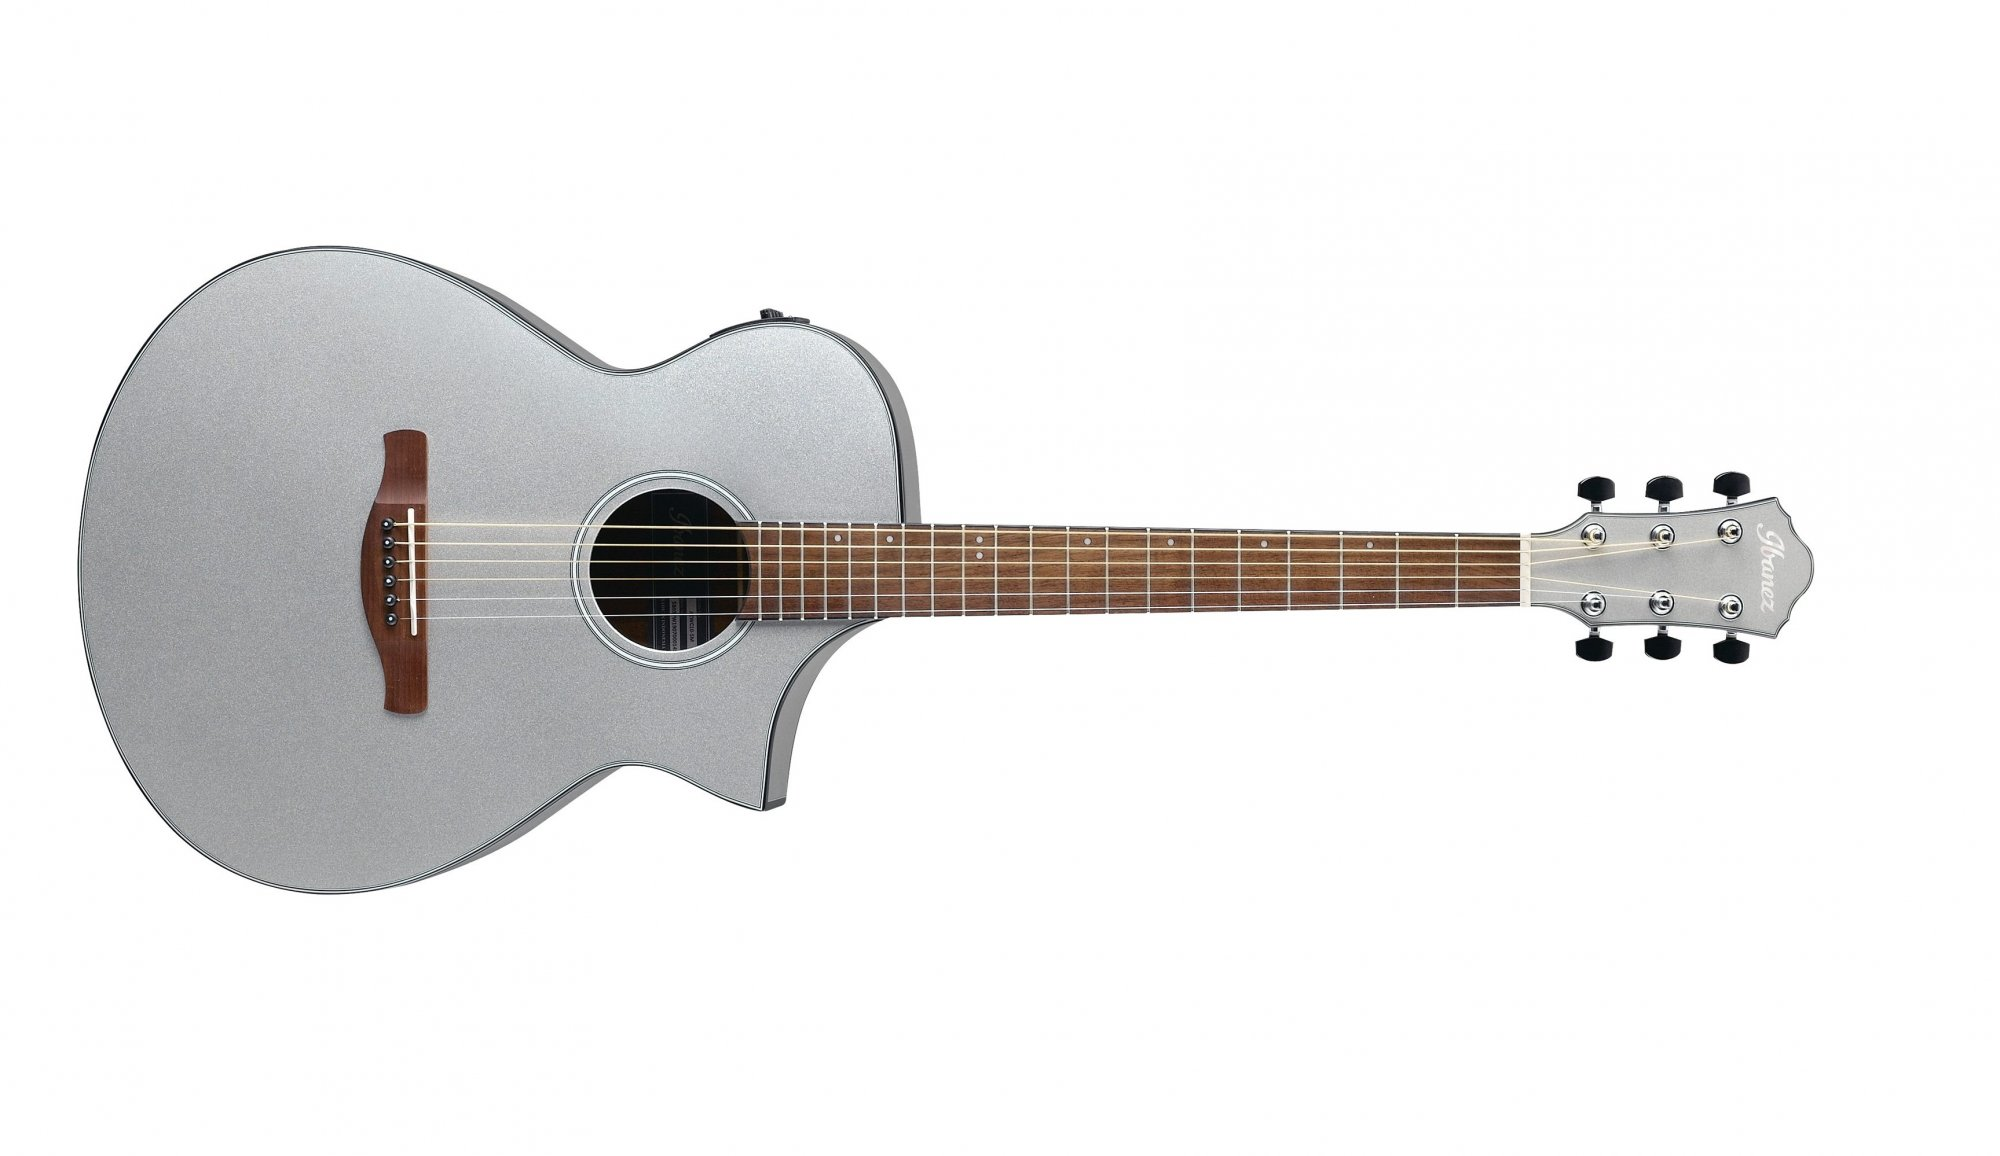 Ibanez AEWC10 Artwood Acoustic Electric Guitar, Silver Metallic